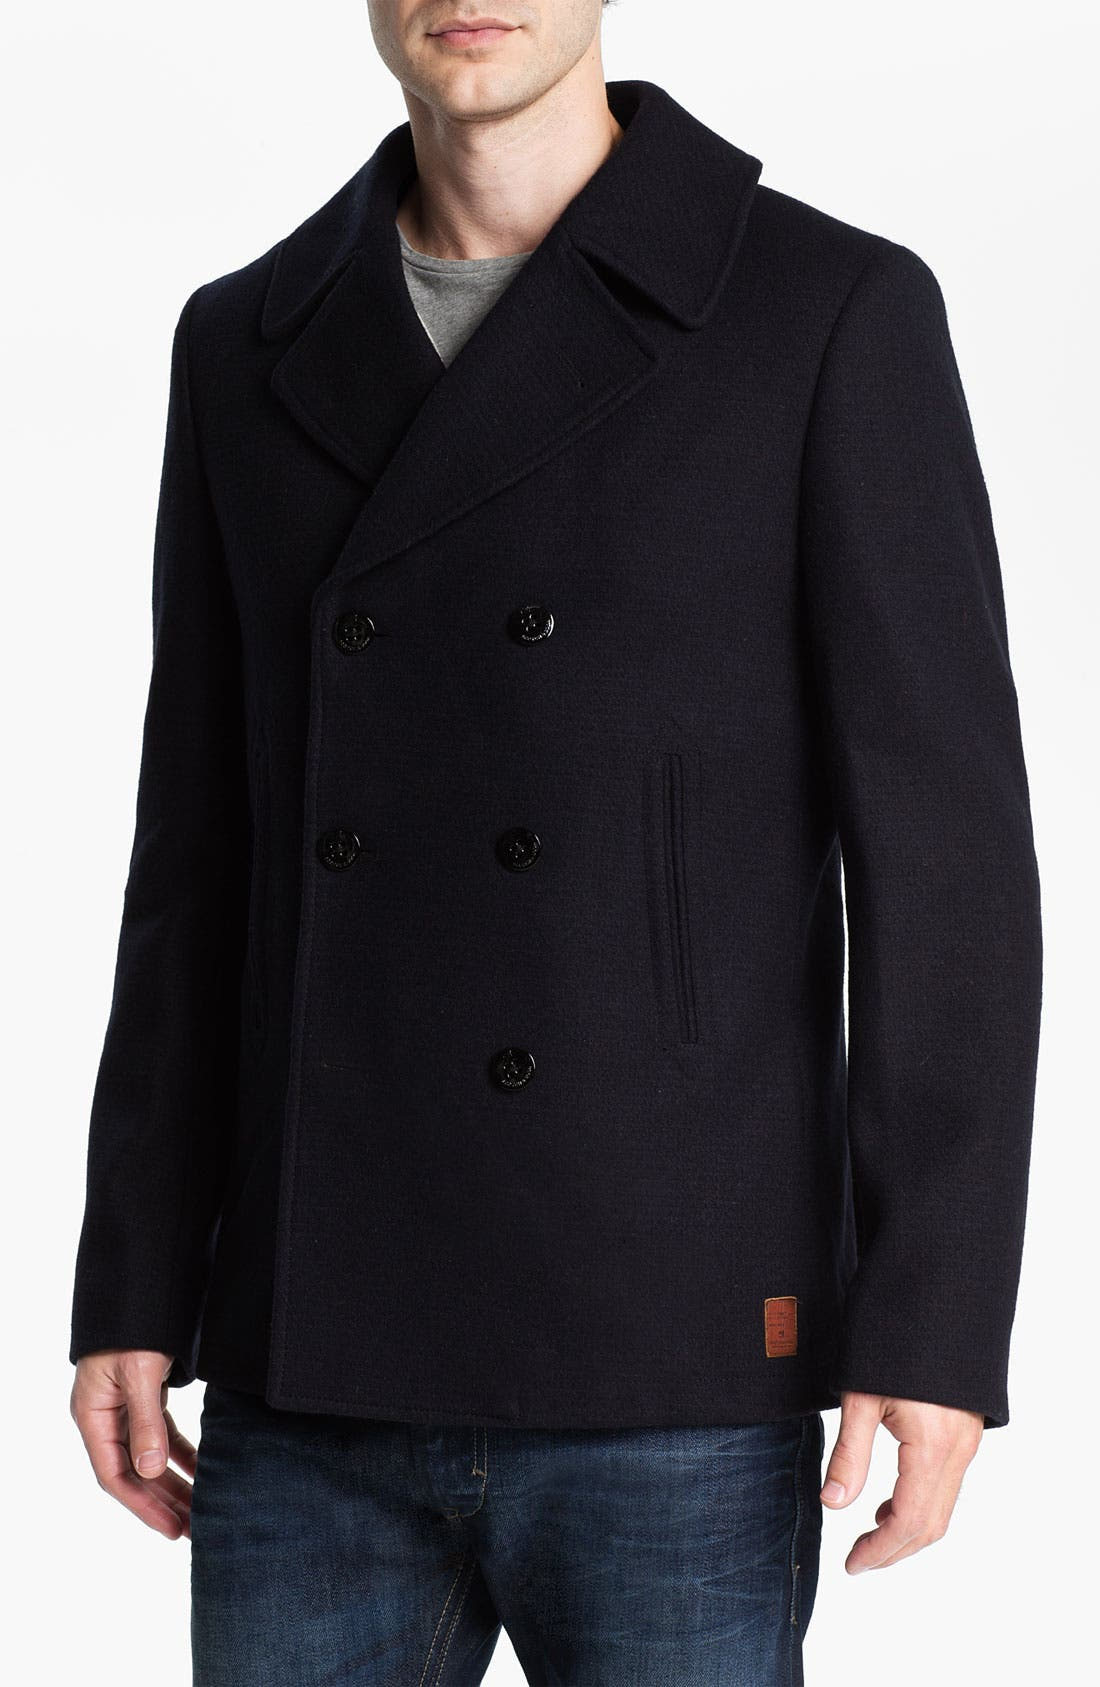 Alternate Image 1 Selected - Scotch & Soda 'Caban' Double Breasted Peacoat